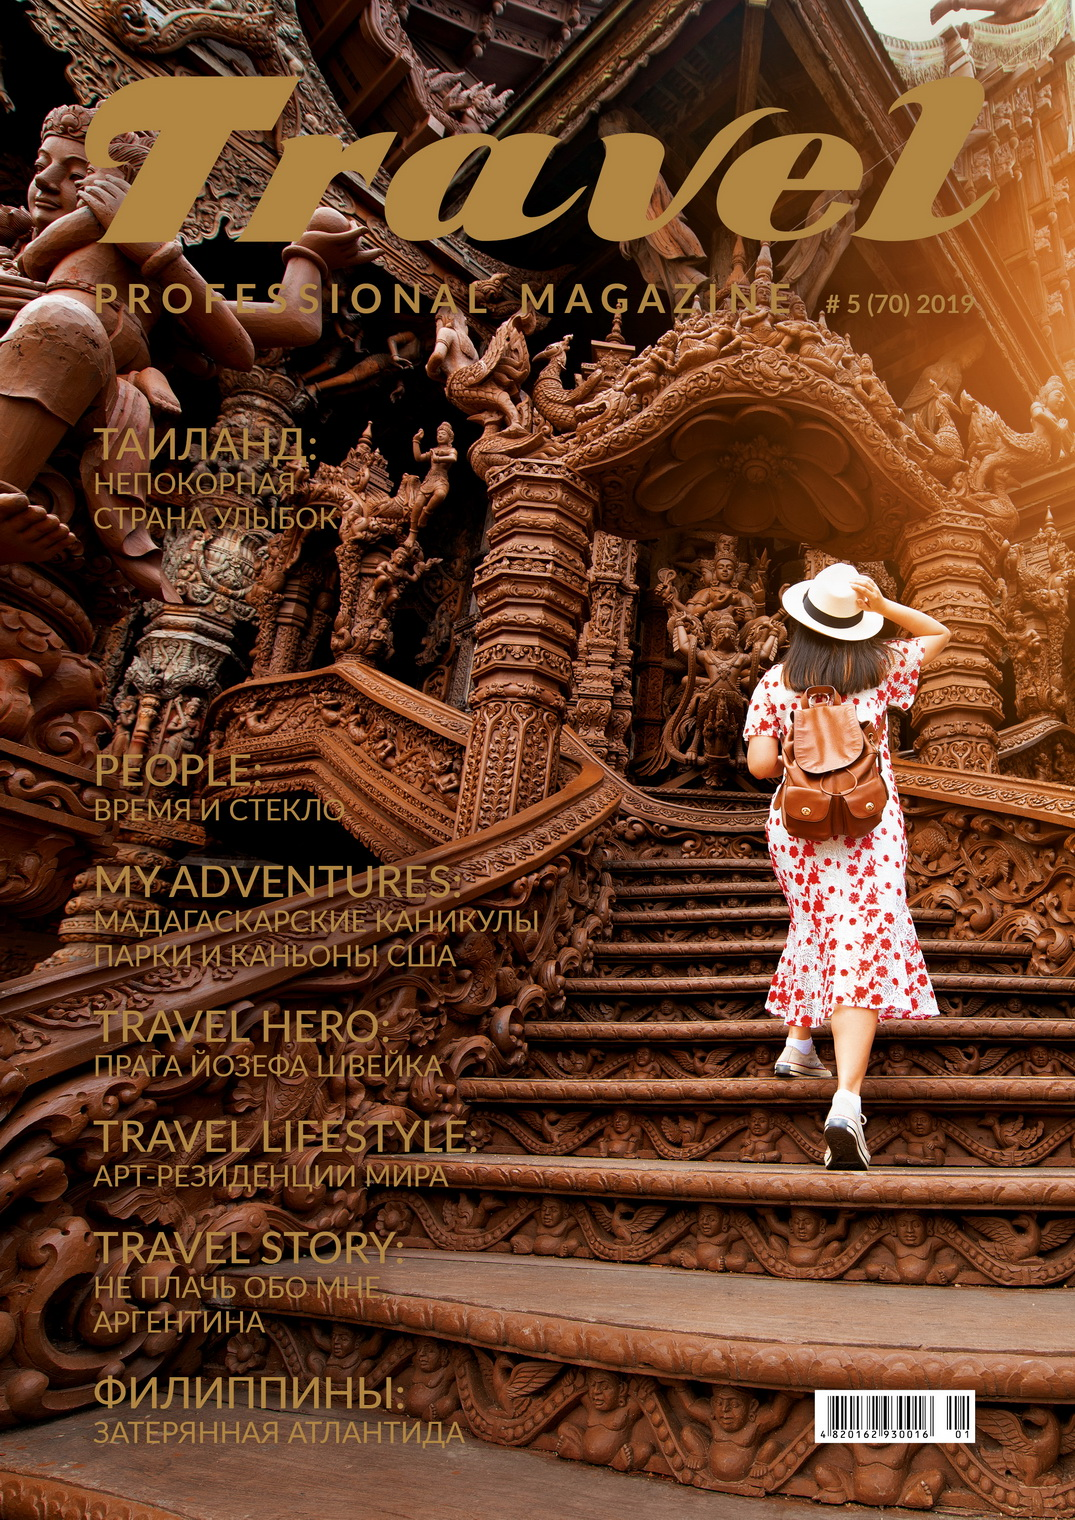 Travel Professional Magazine # 5 (70) 2019